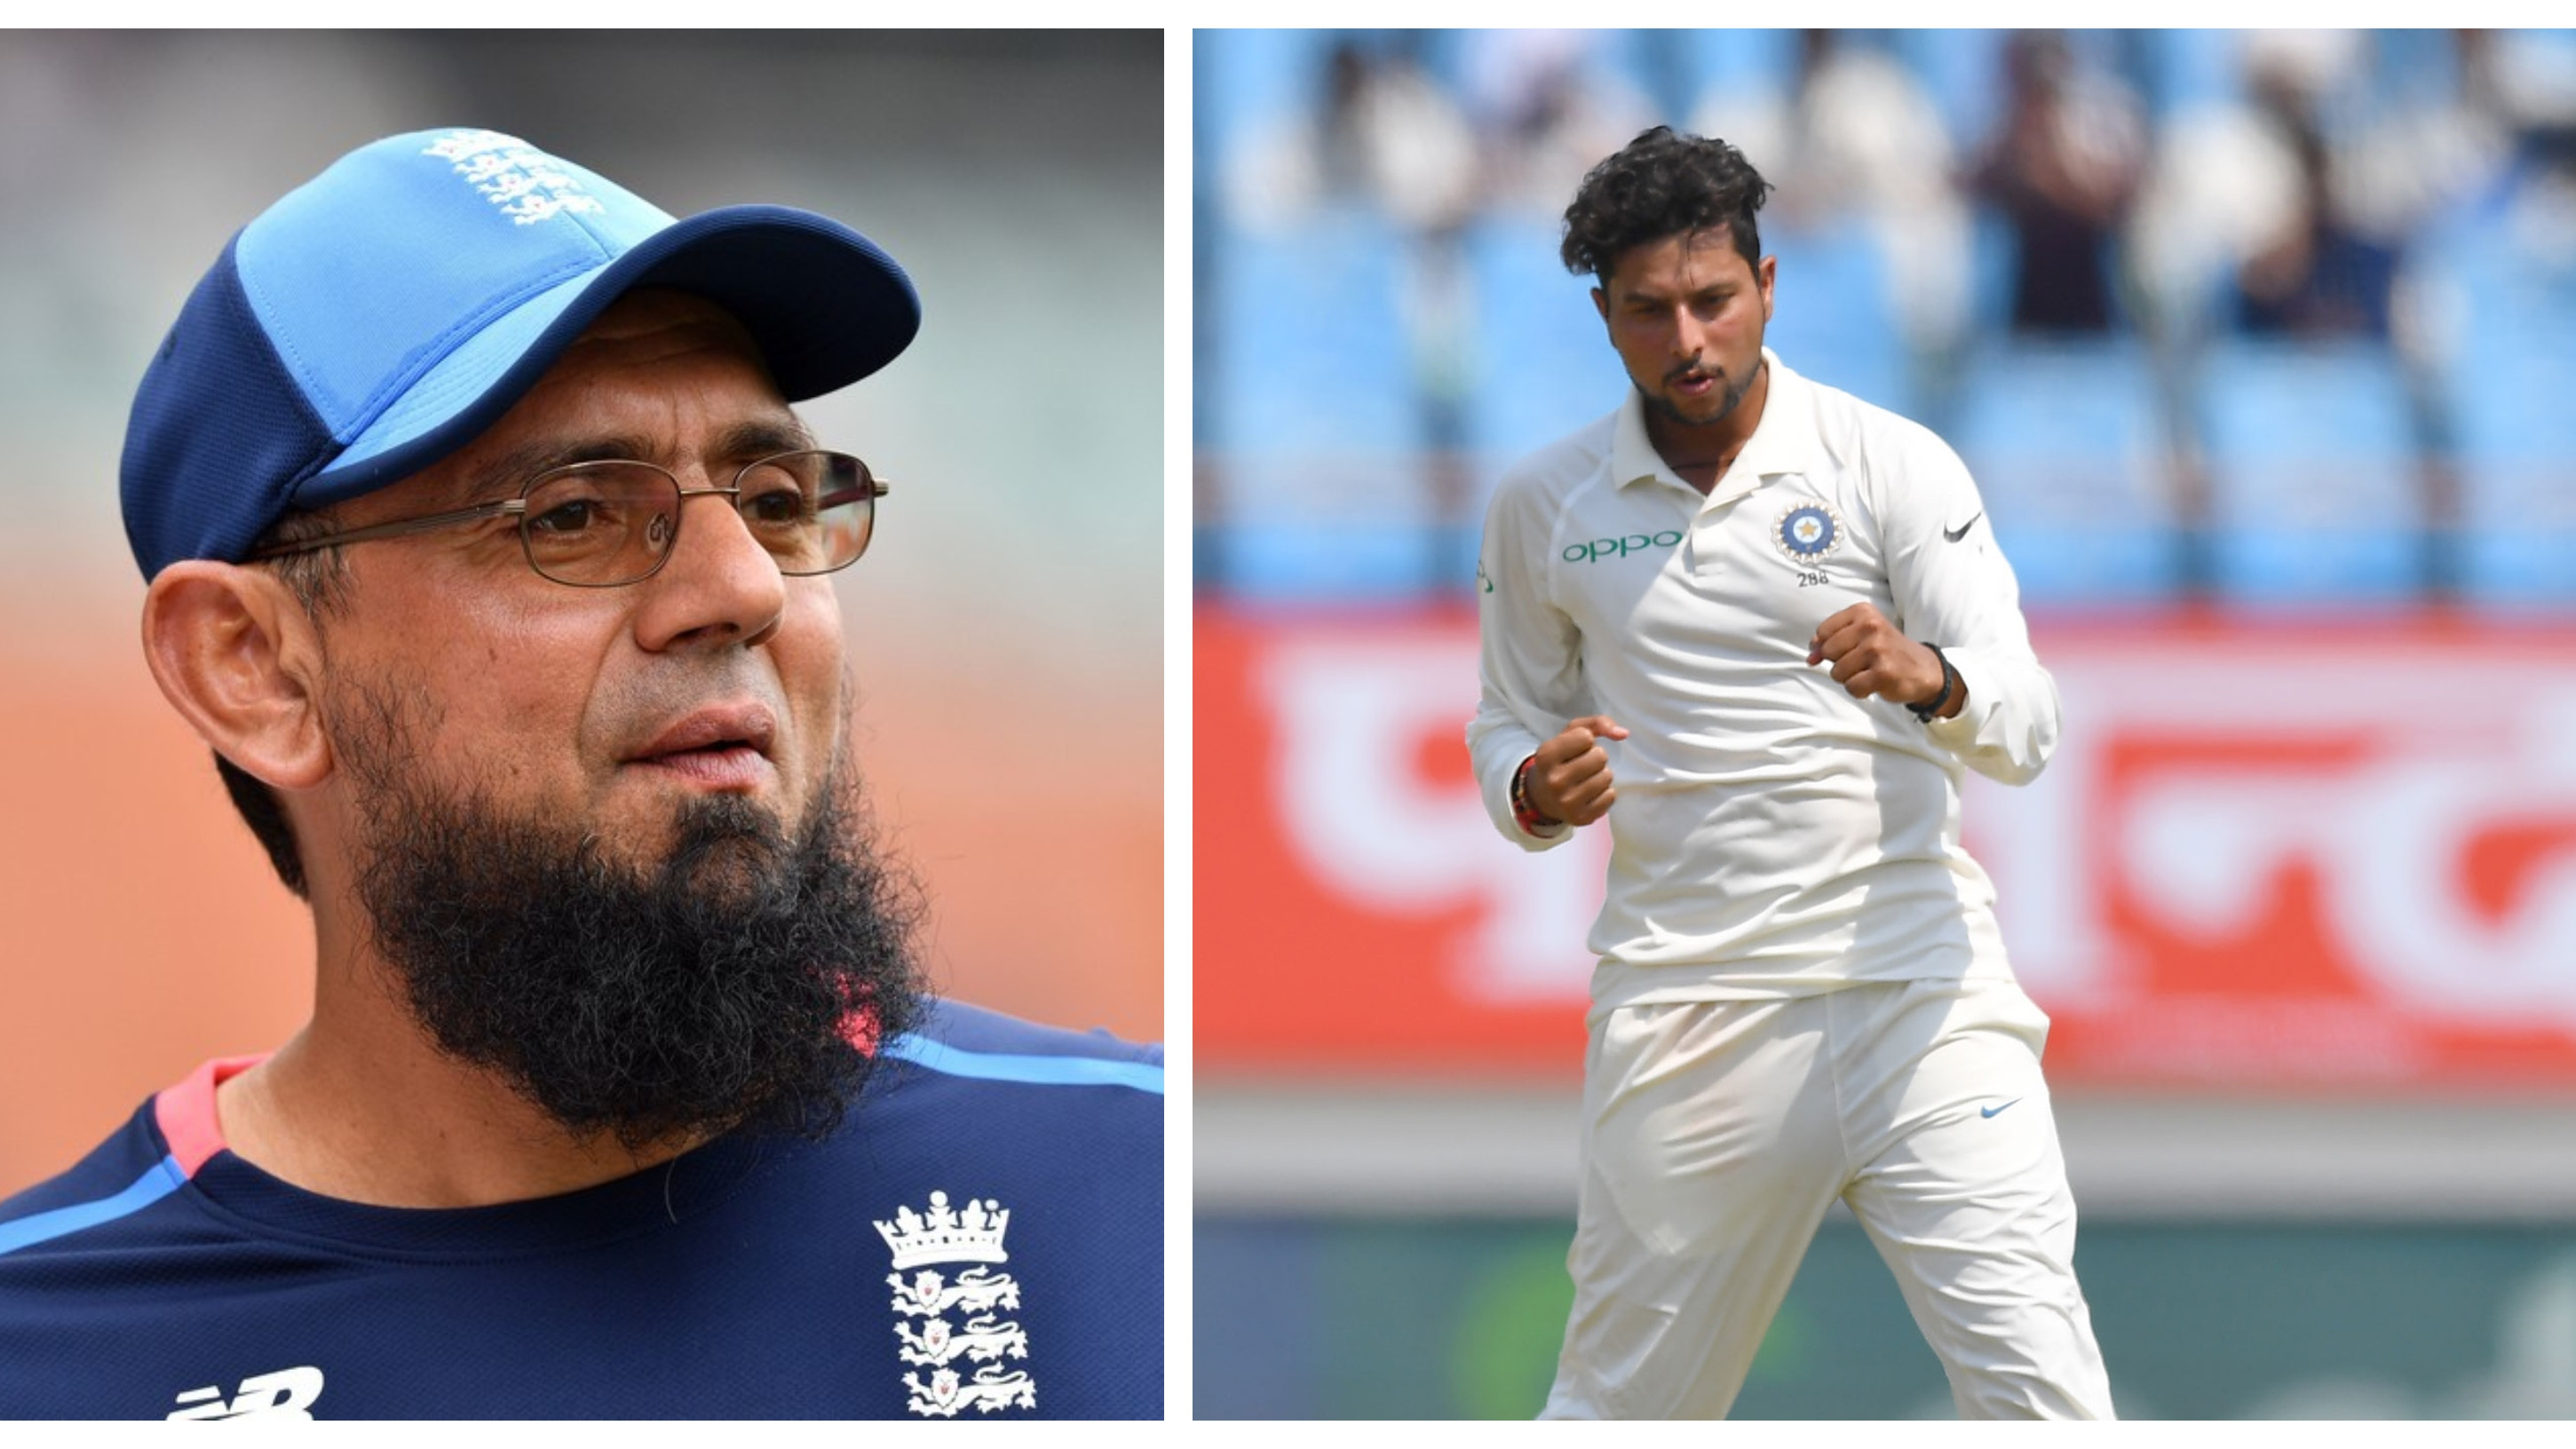 IND v WI 2018: There is something special in Kuldeep Yadav, says Saqlain Mushtaq